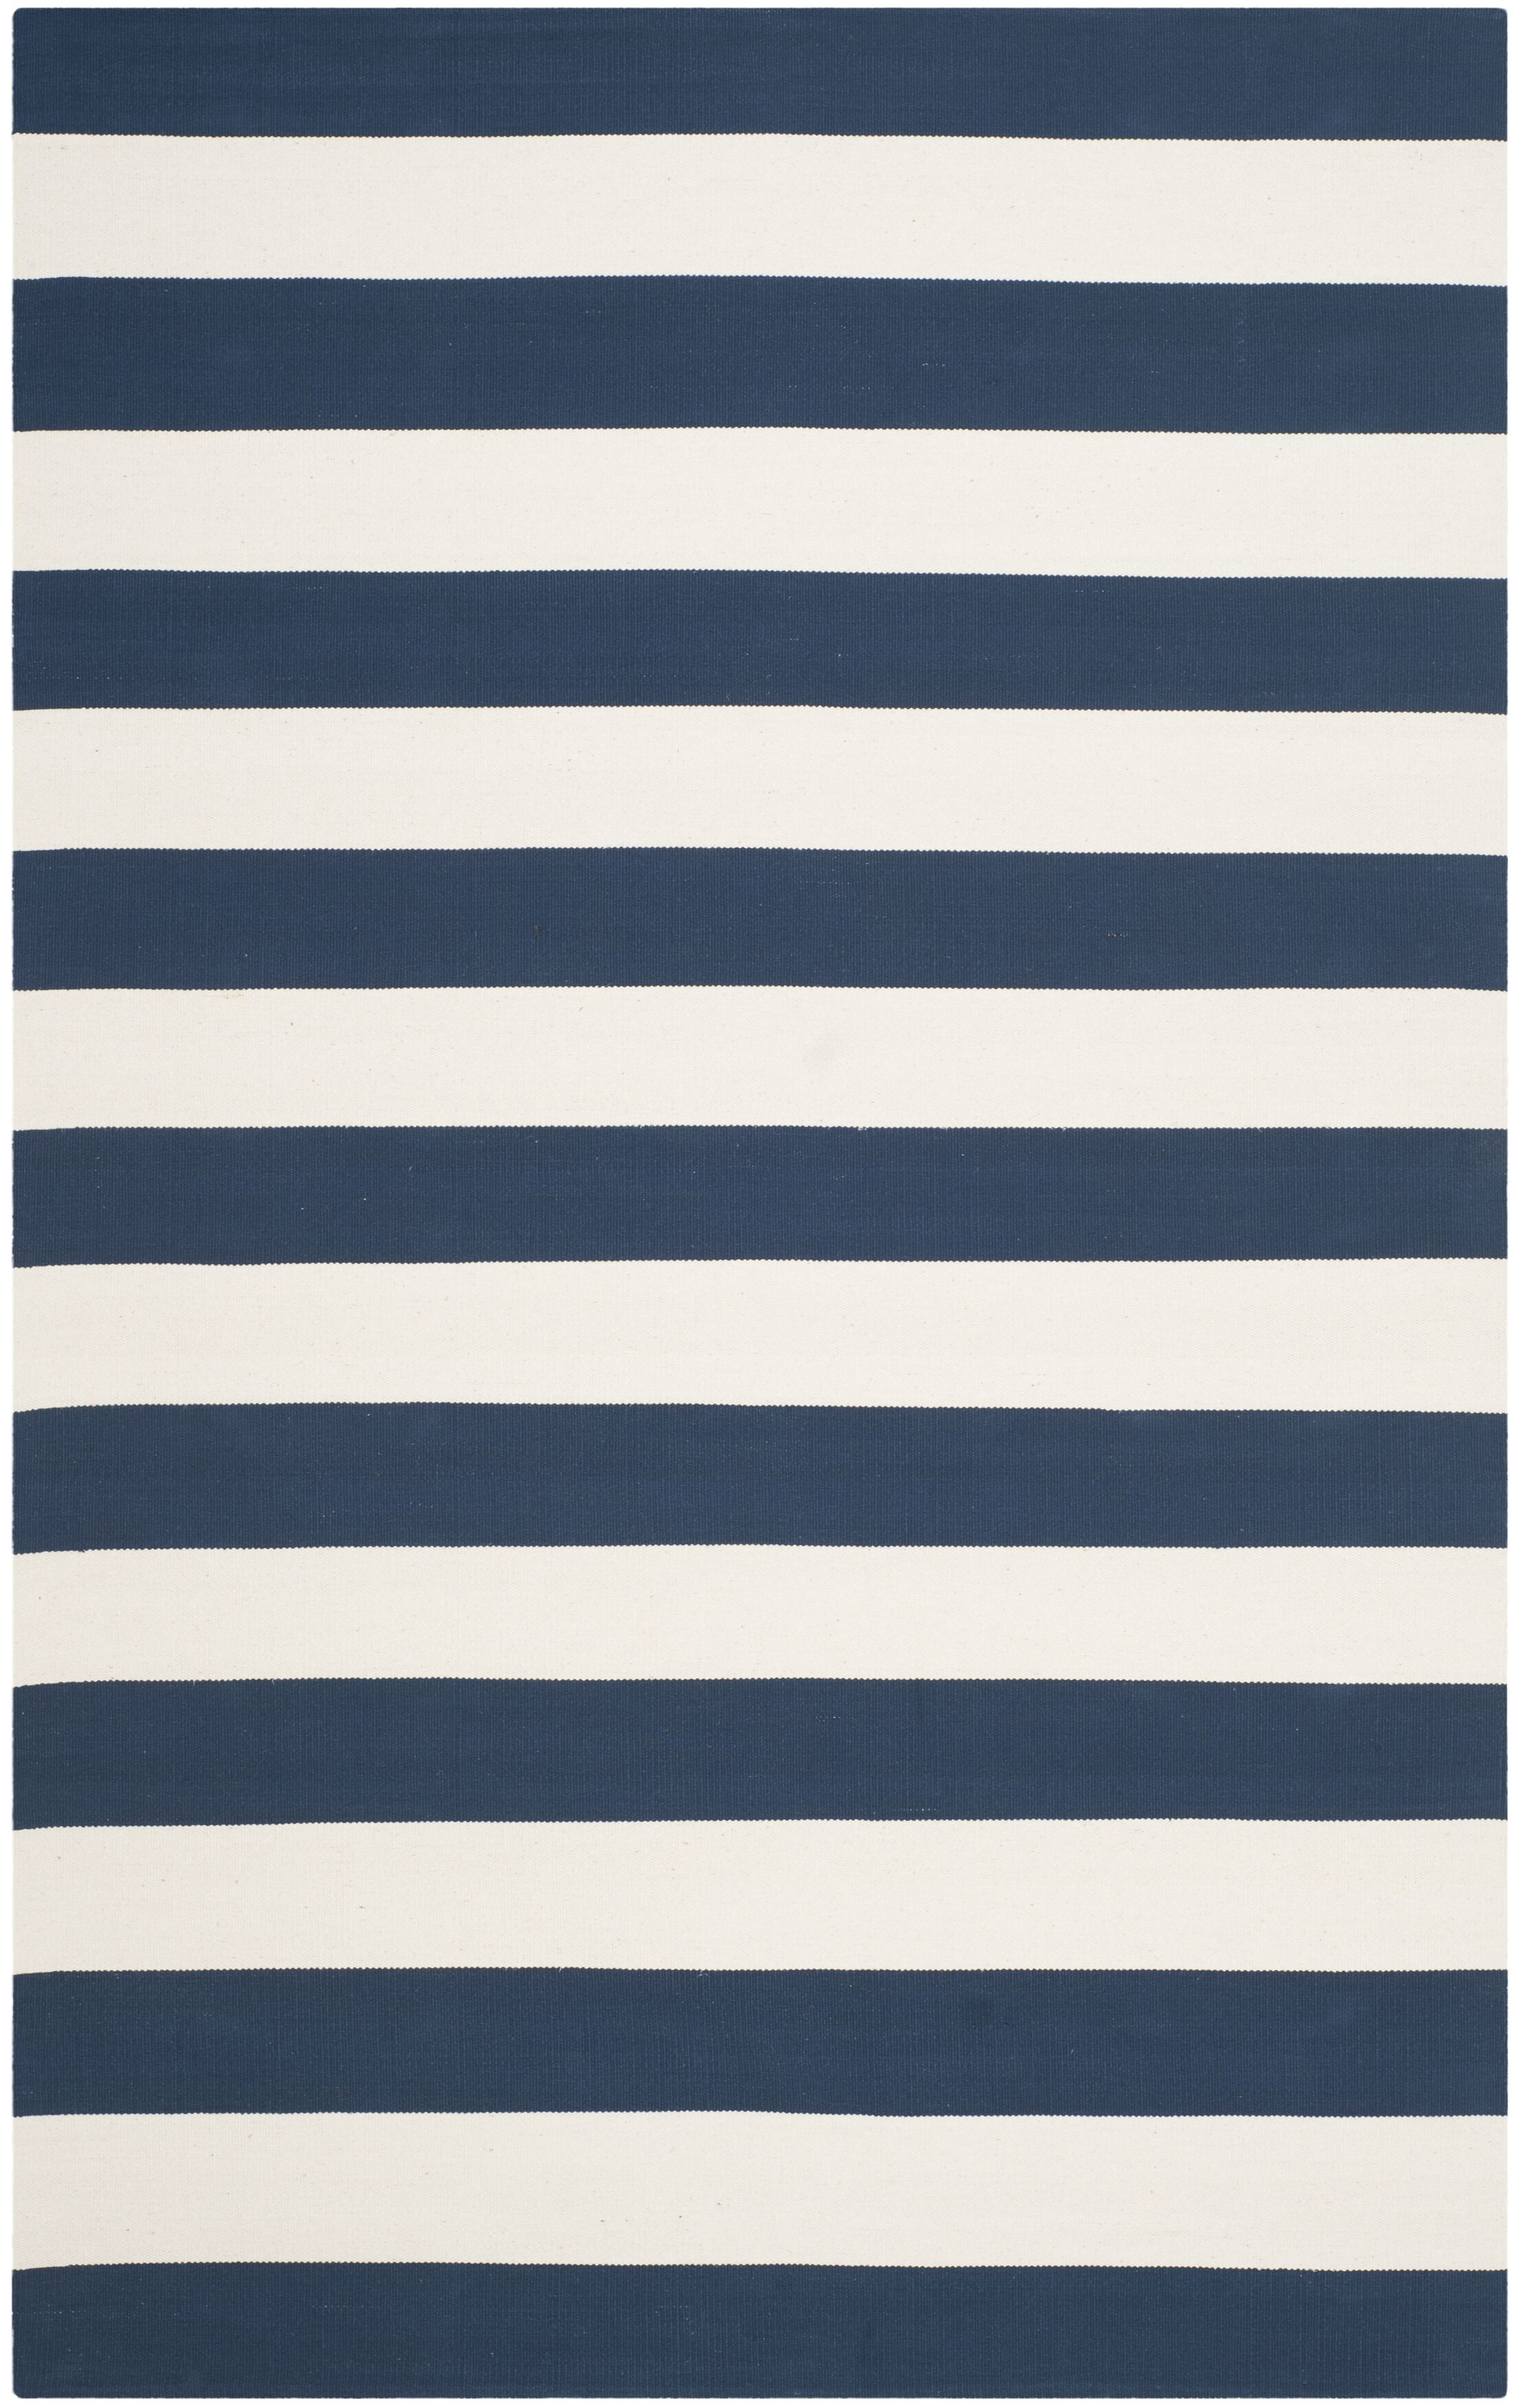 Brookvale Hand-Woven Cotton Navy/Ivory Area Rug Rug Size: Rectangle 4' x 6'